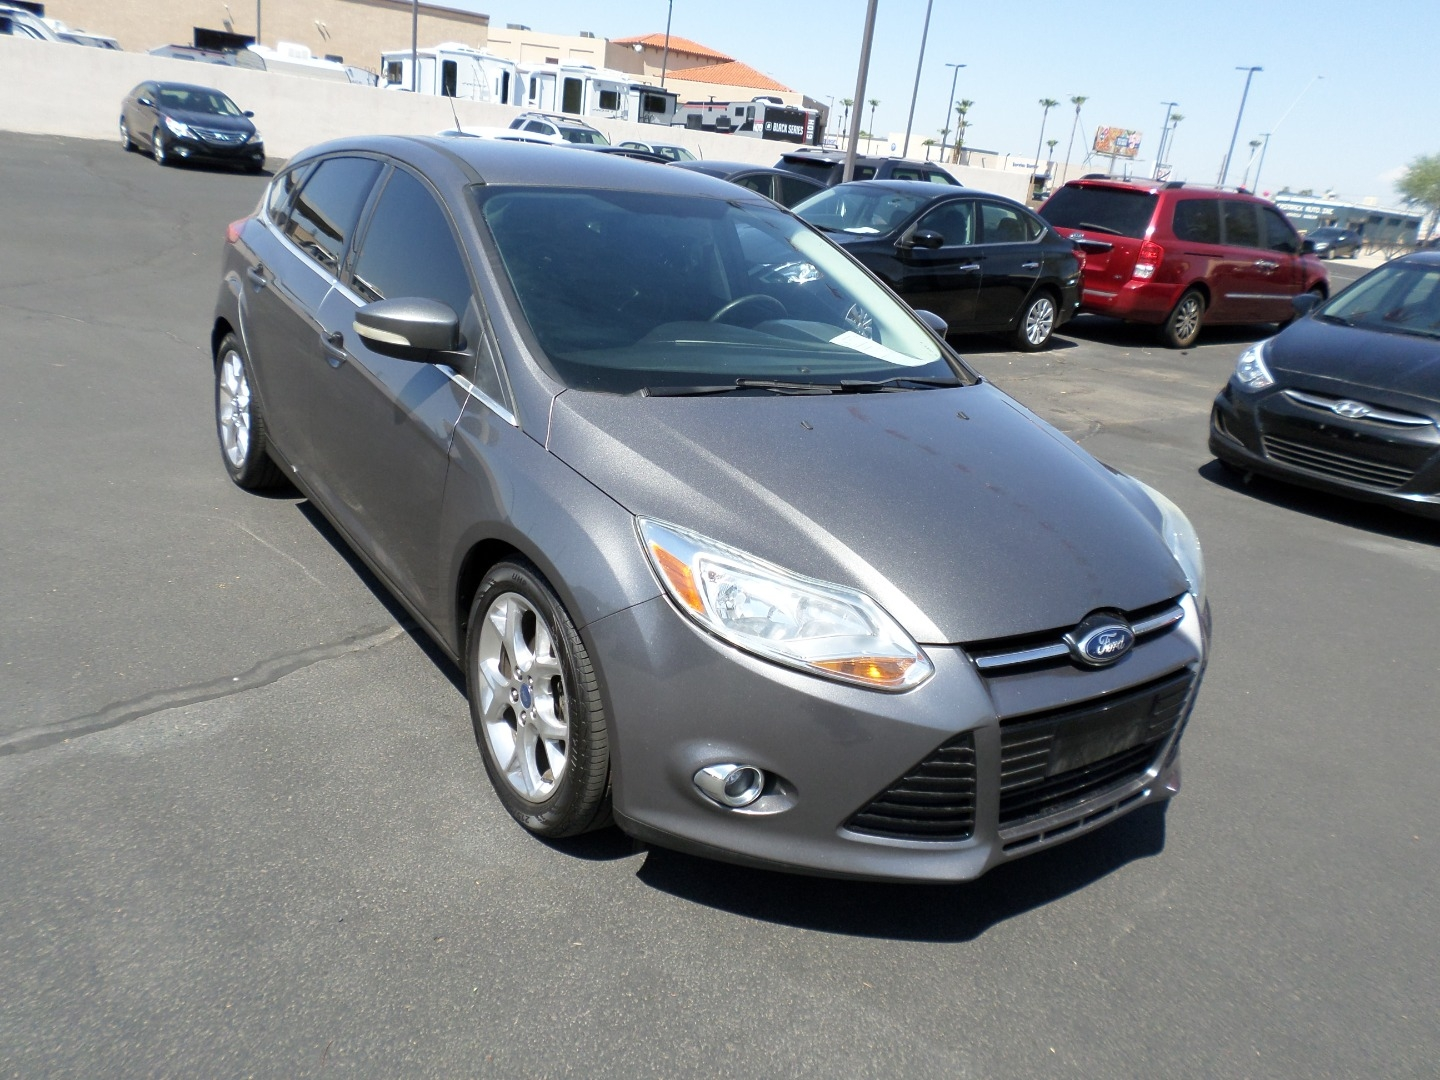 Pre-Owned 2012 Ford Focus 5dr HB SEL